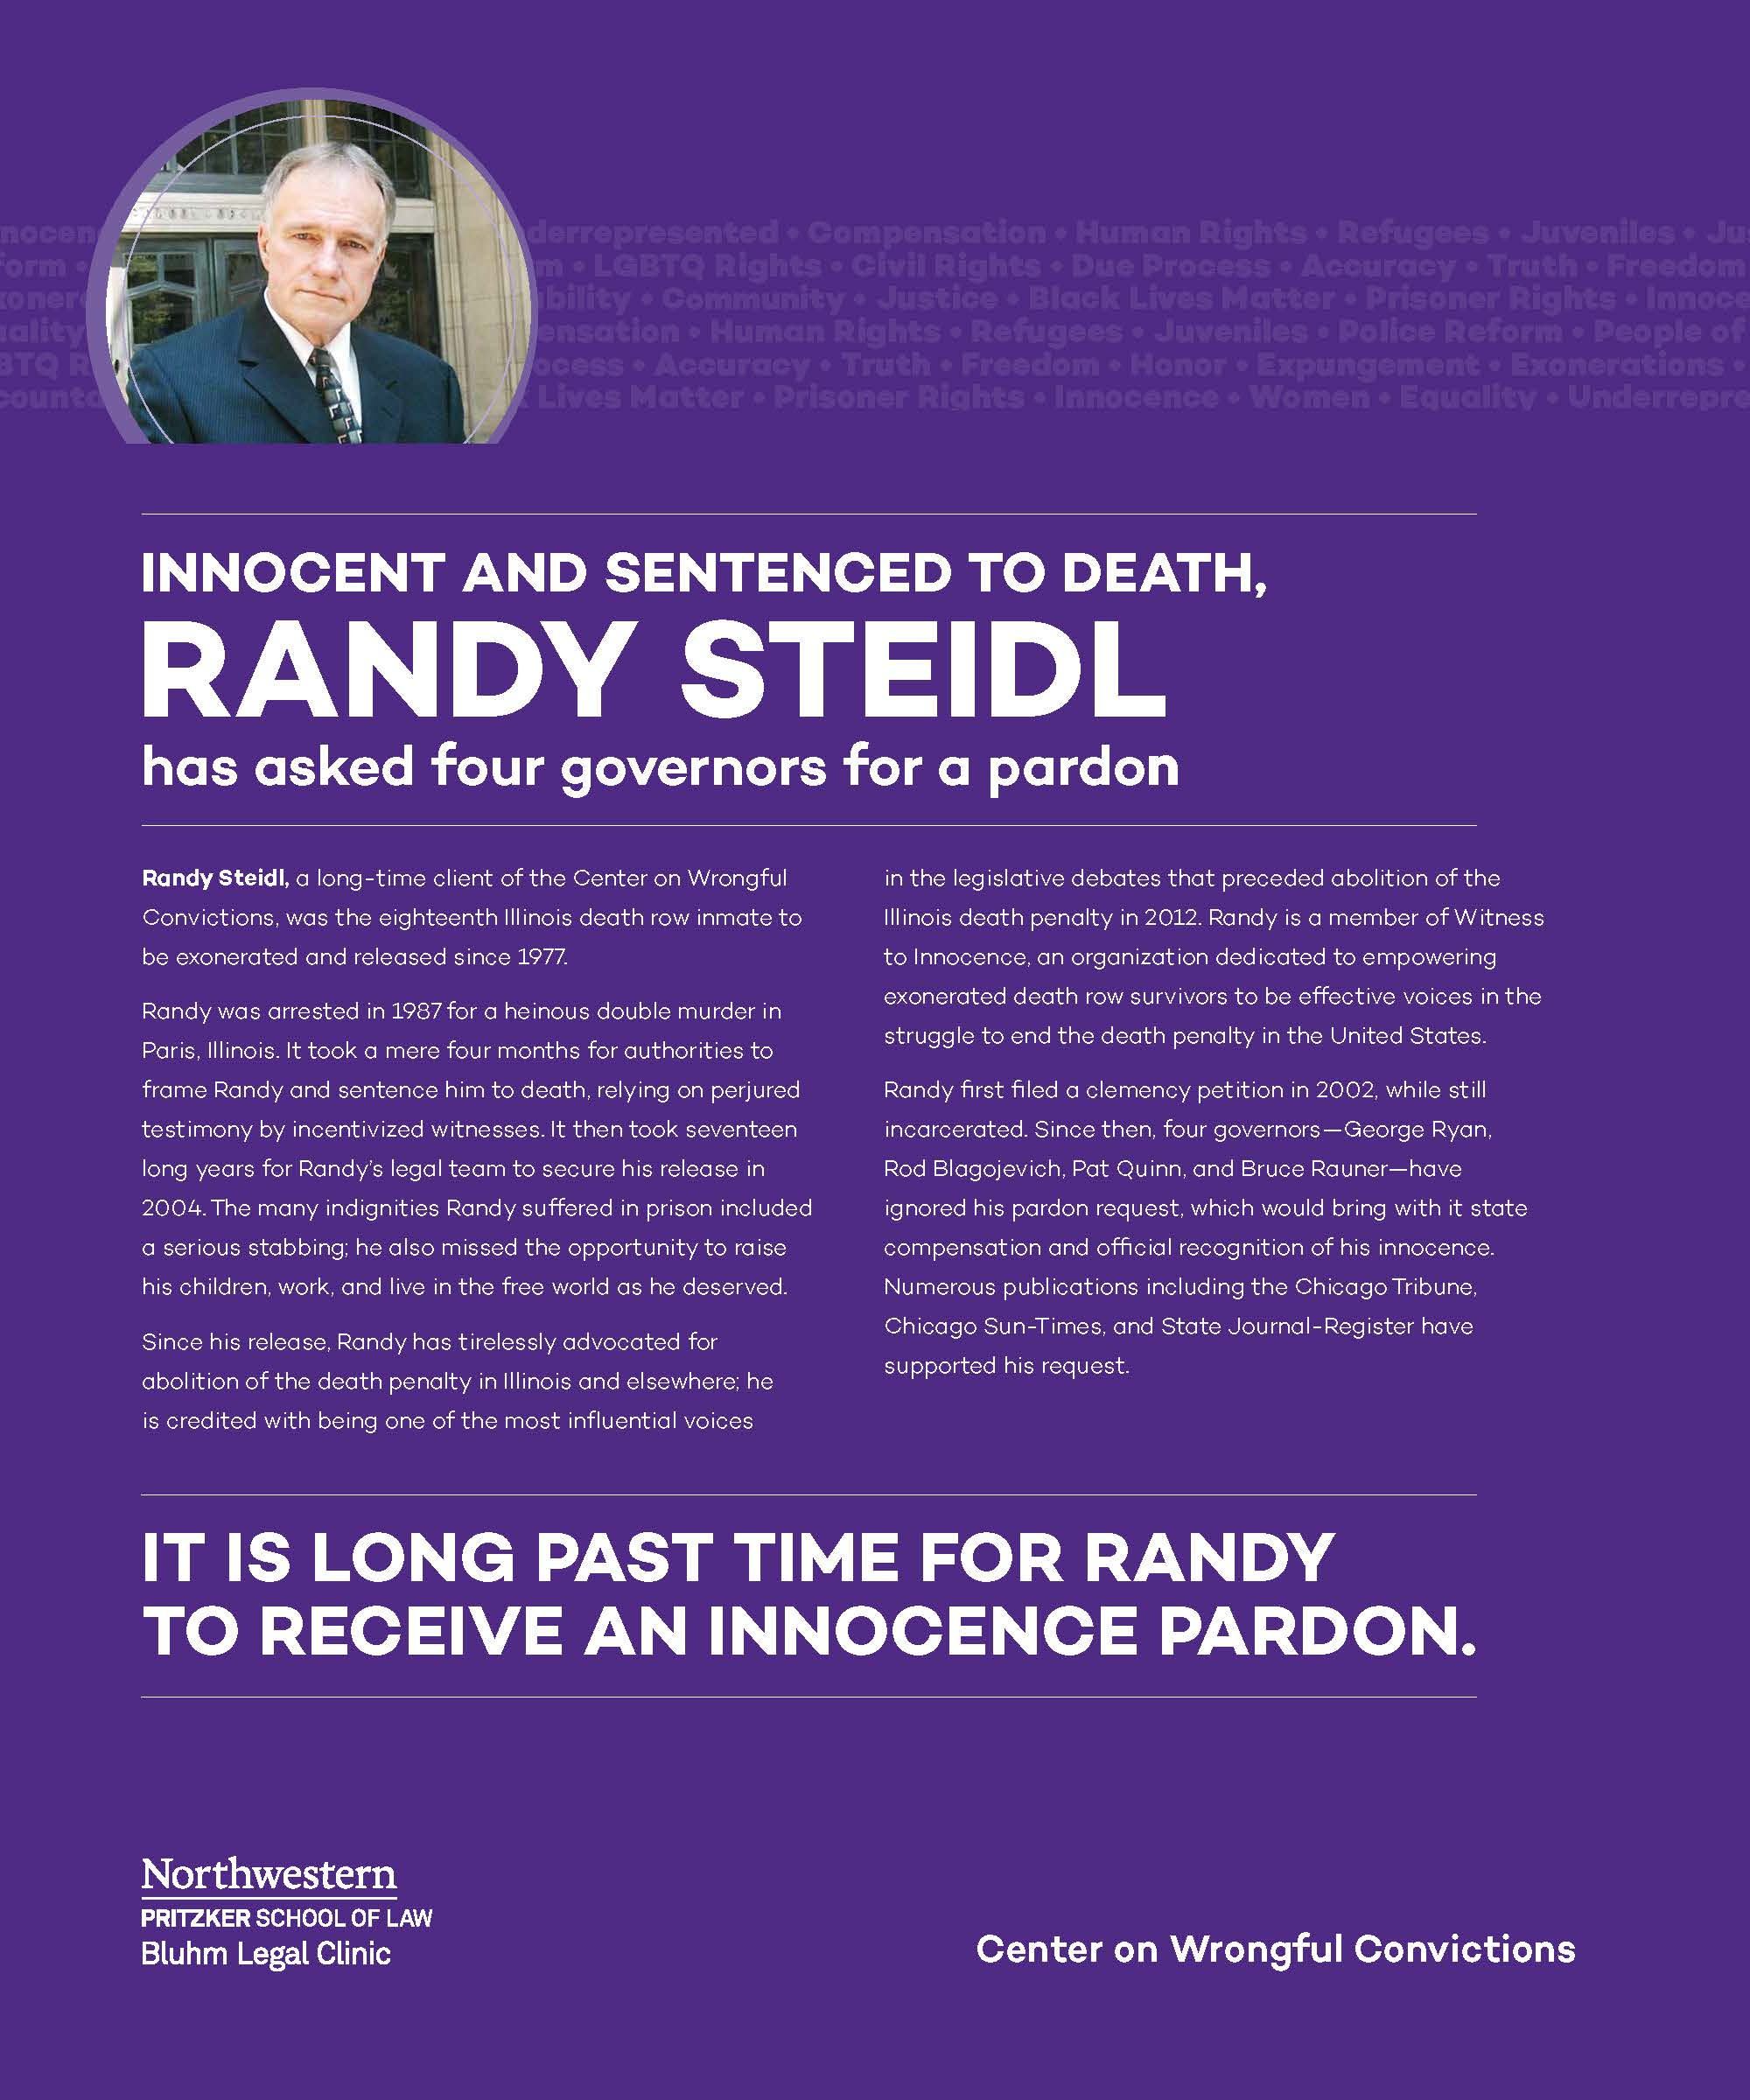 Pardon Randy Steidl